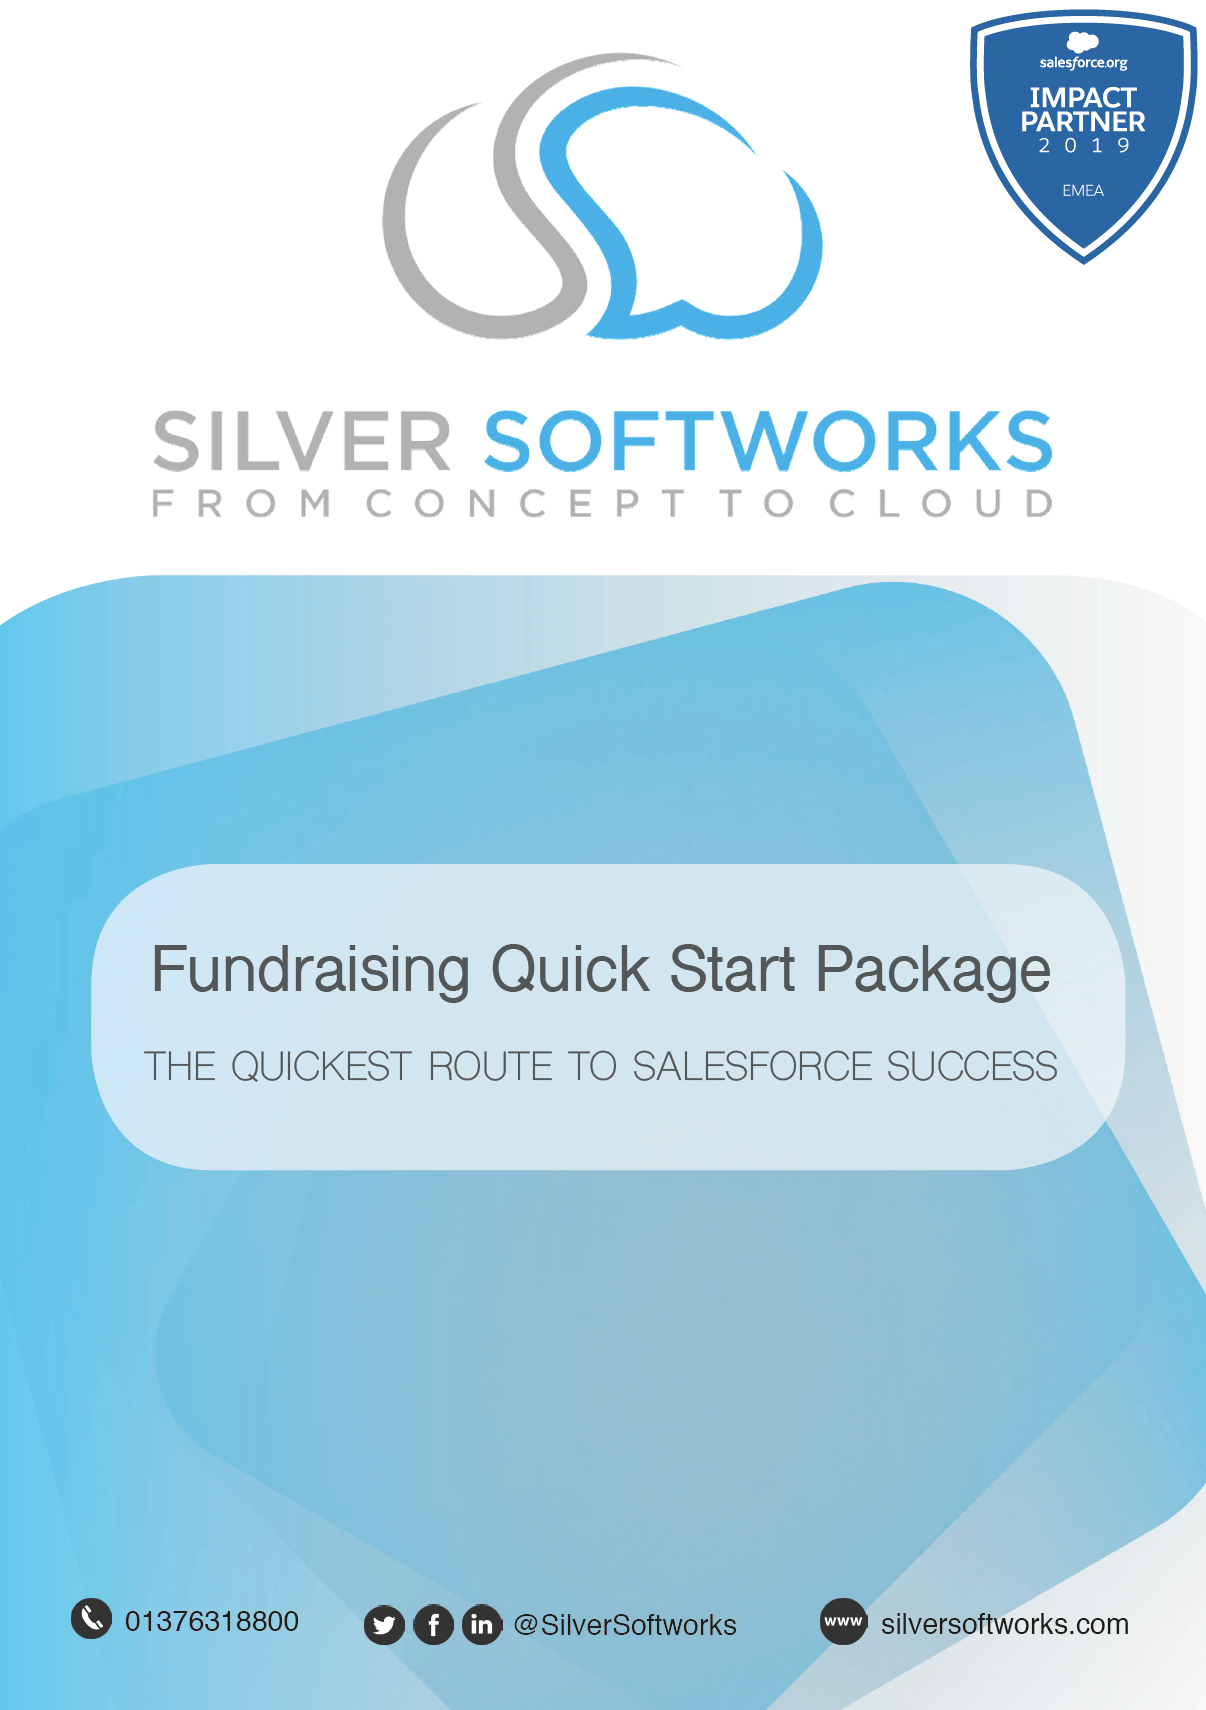 Fundraising Quick Start Package